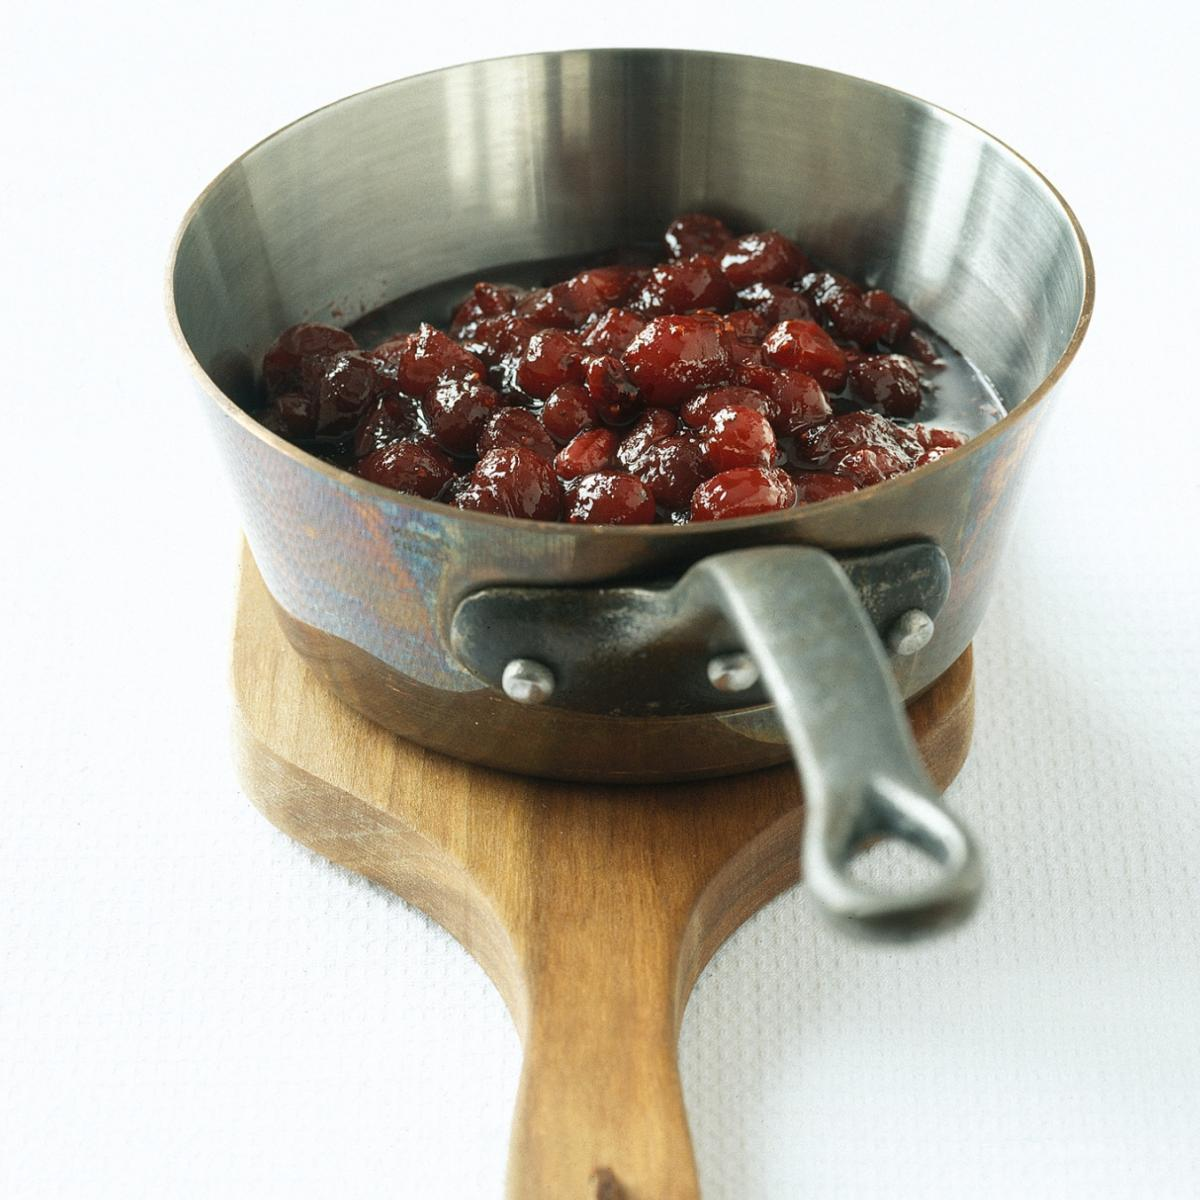 Happy spiced cranberry chutney